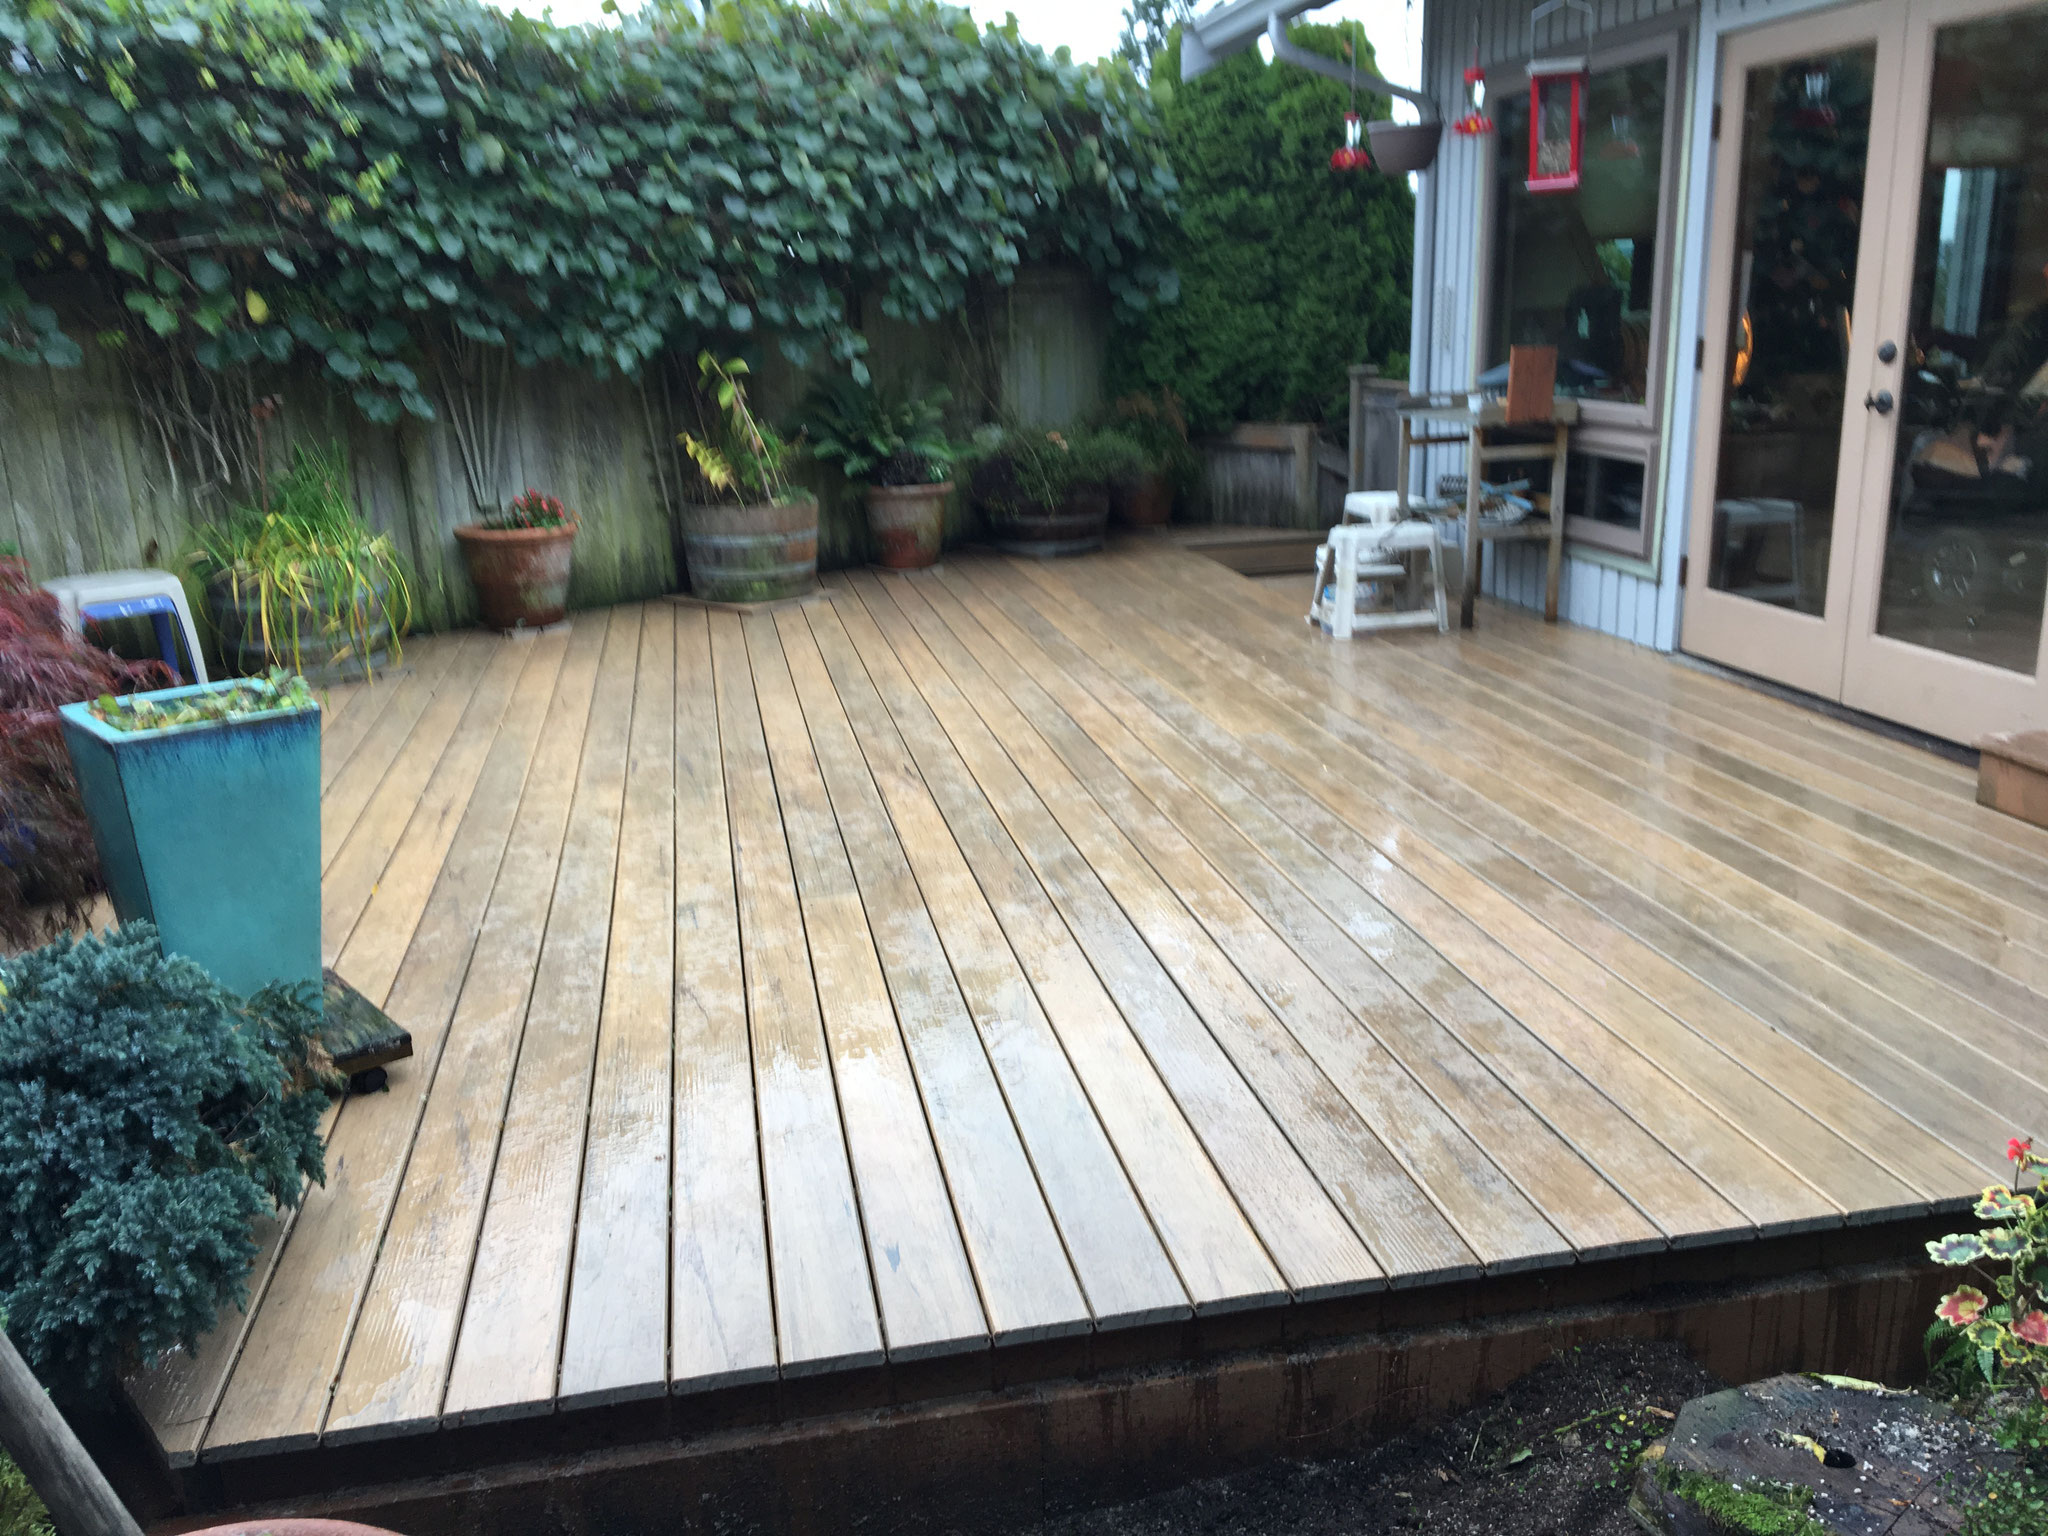 New Deck Floor -turned out beautiful !